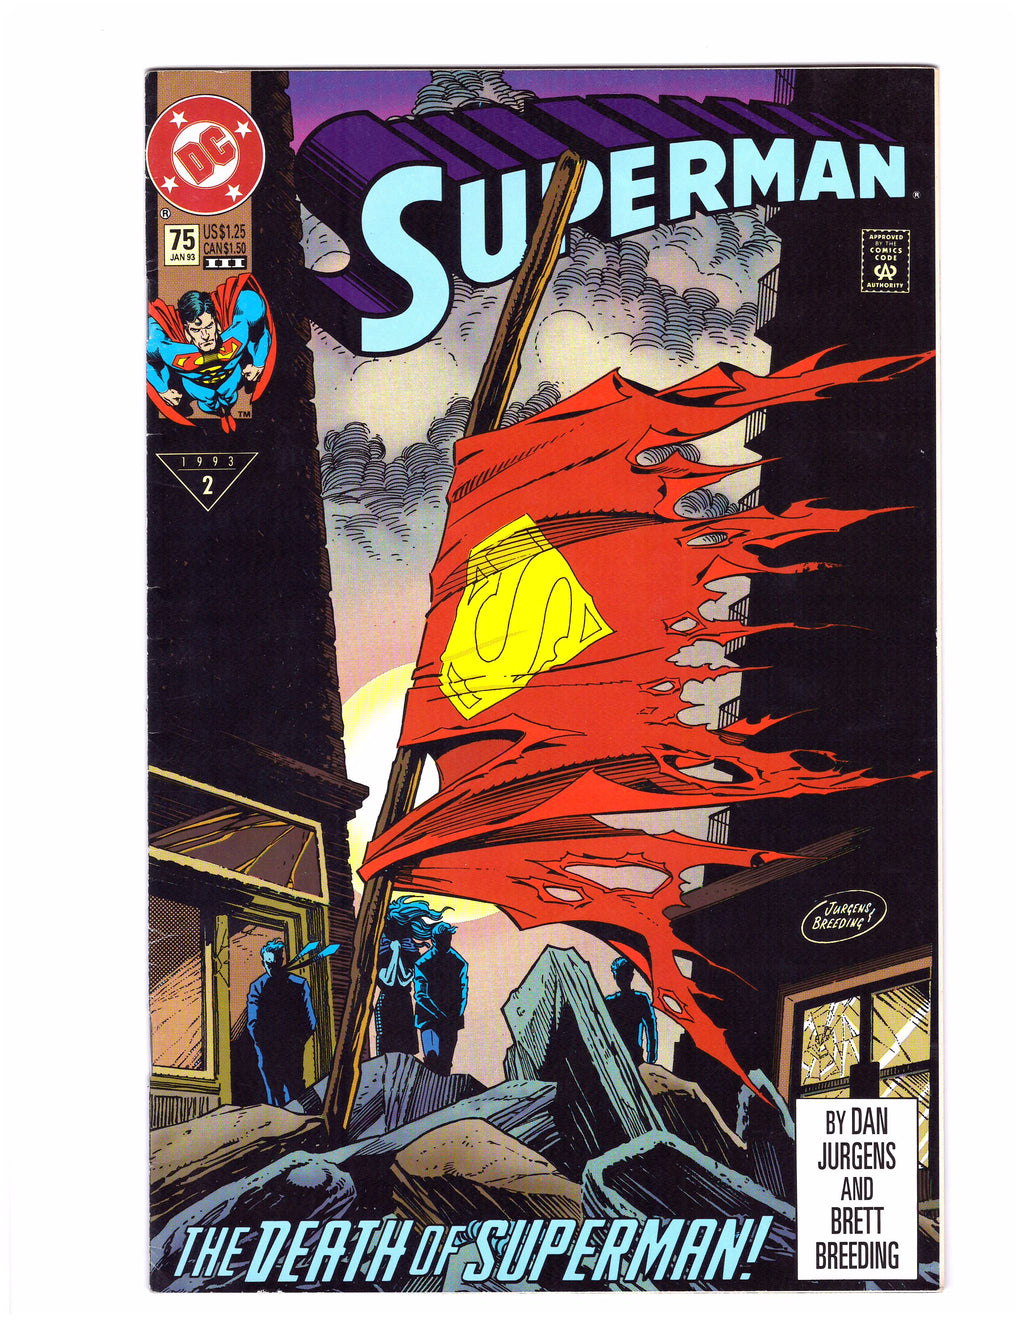 Superman #75C - The Death Of Superman